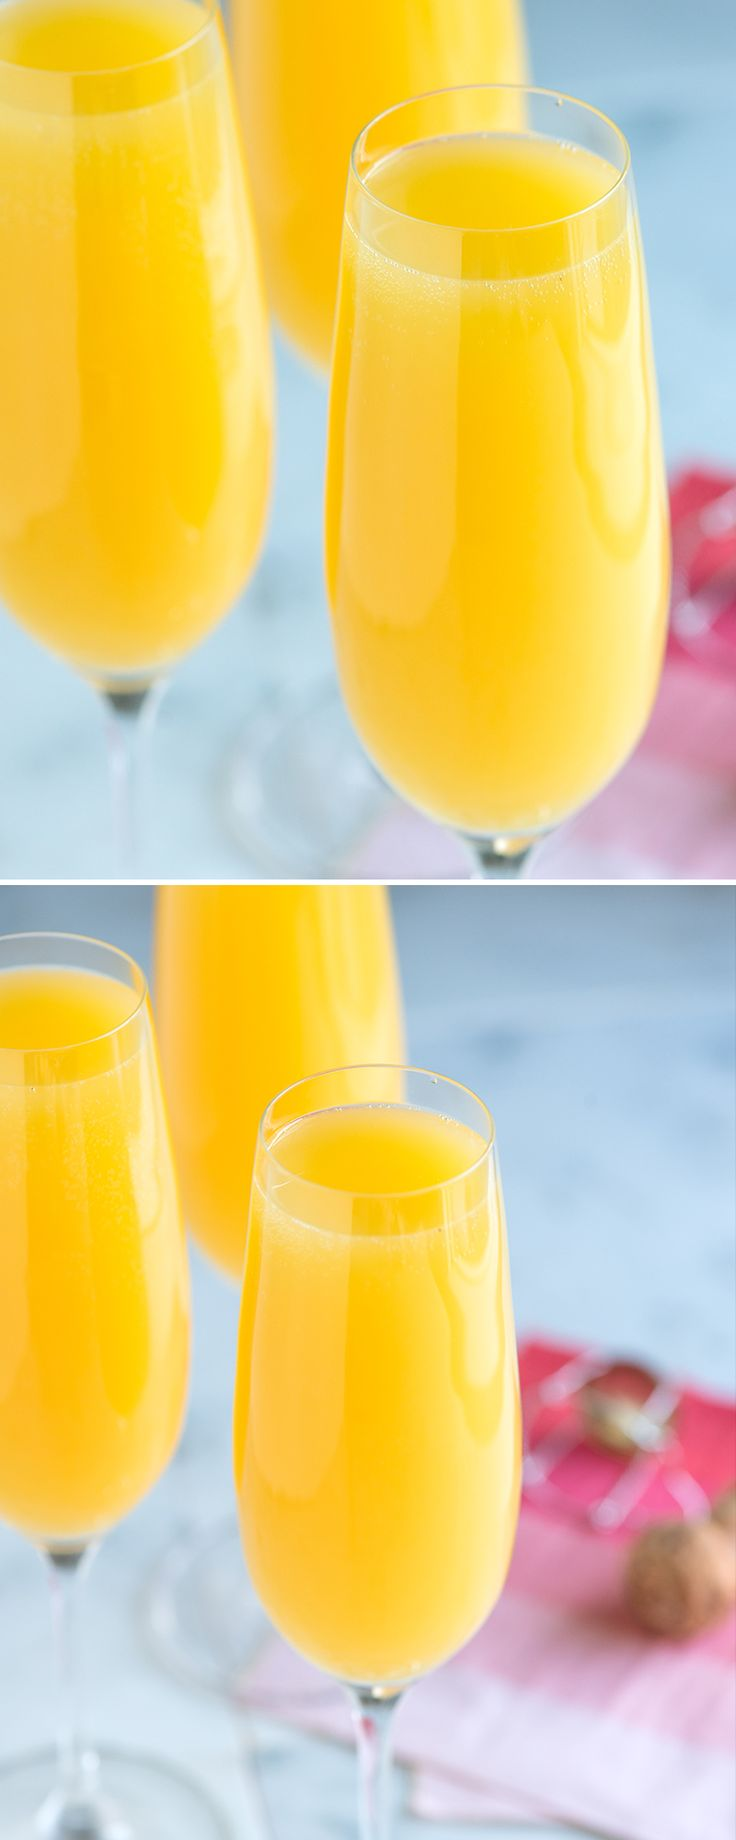 What's better to serve at brunch than a fabulous mimosa recipe made with dry sparking wine and orange juice? It's simple, fun and perfect to serve company. We share our recipe and video with tips for how to make the absolute best mimosa at home. From inspiredtaste.net @inspiredtaste